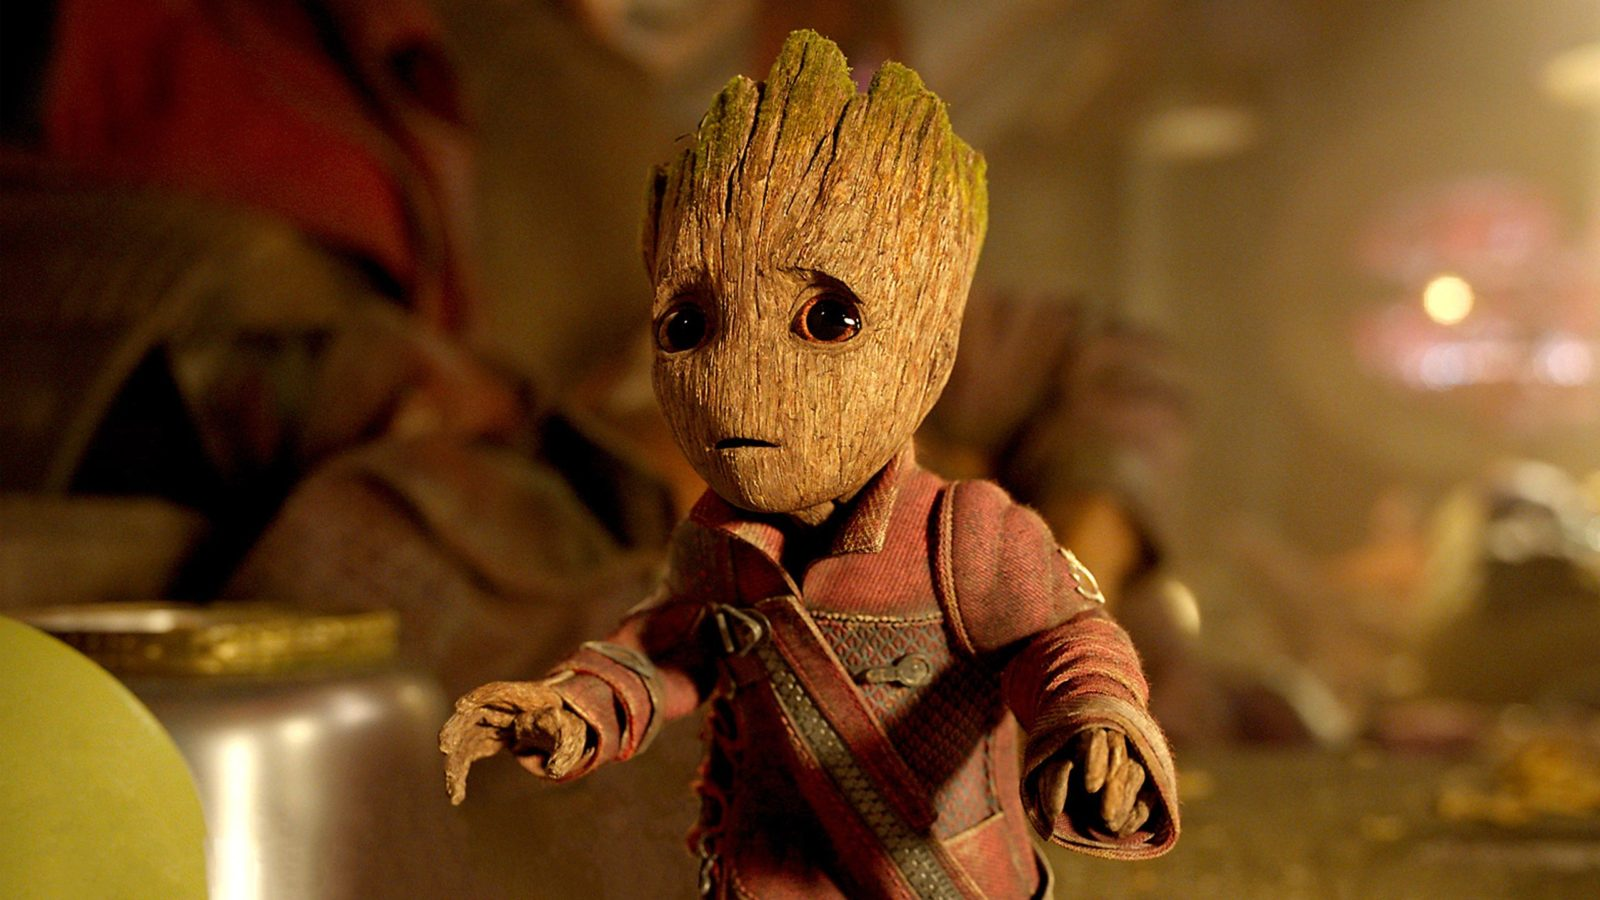 Baby Groot Guardians Of The Galaxy Wallpapers Hd Wallpapers